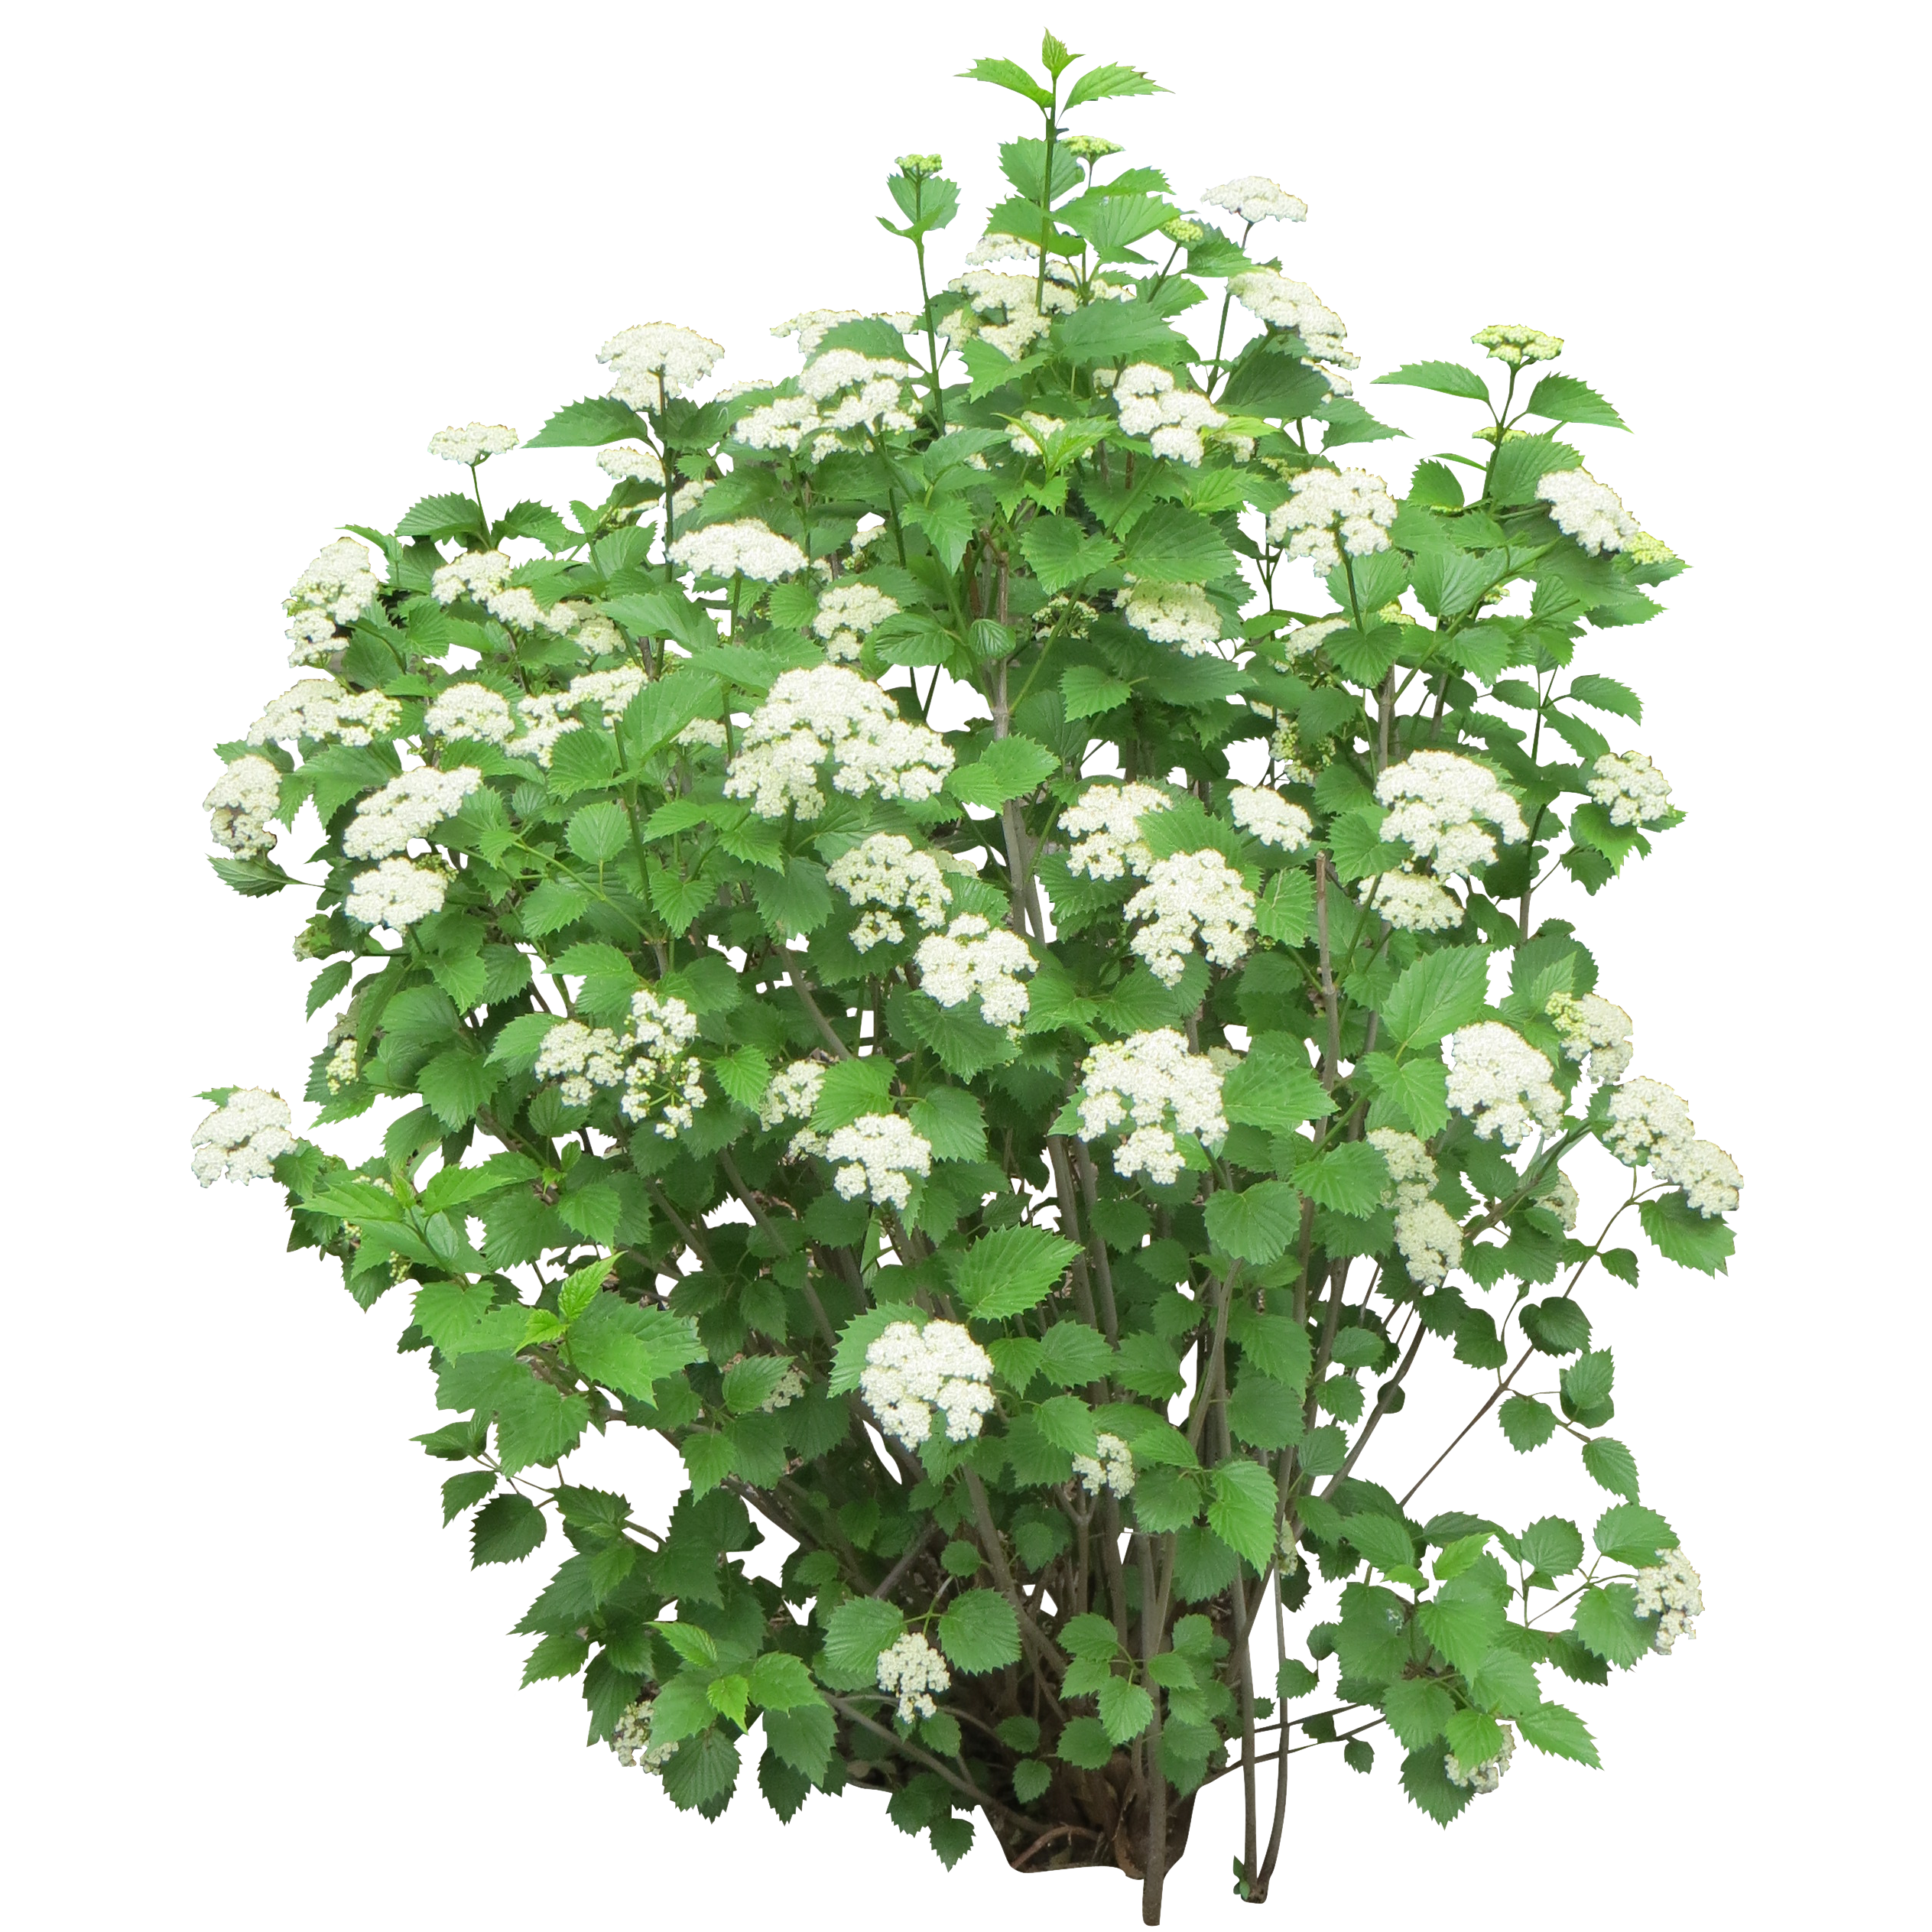 Bushes images free download. Flower plants png